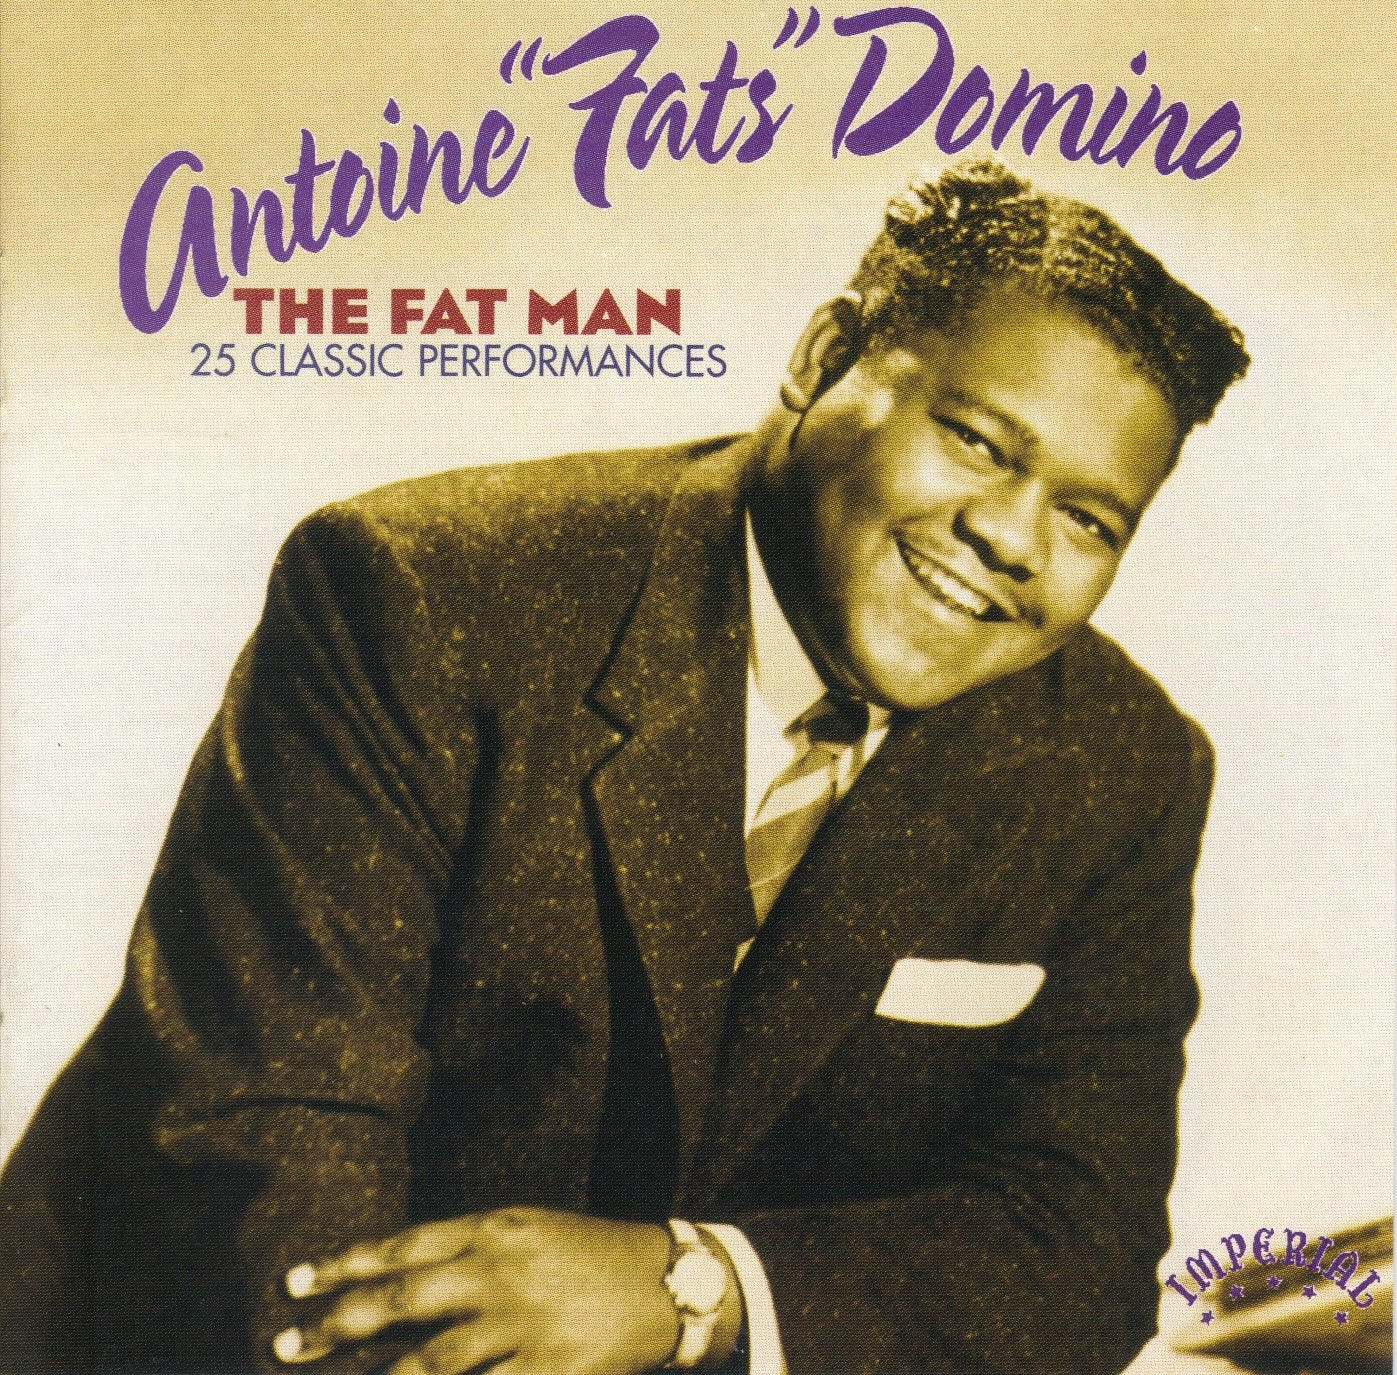 Fats Domino - Fats Domino 25 Classic Performances